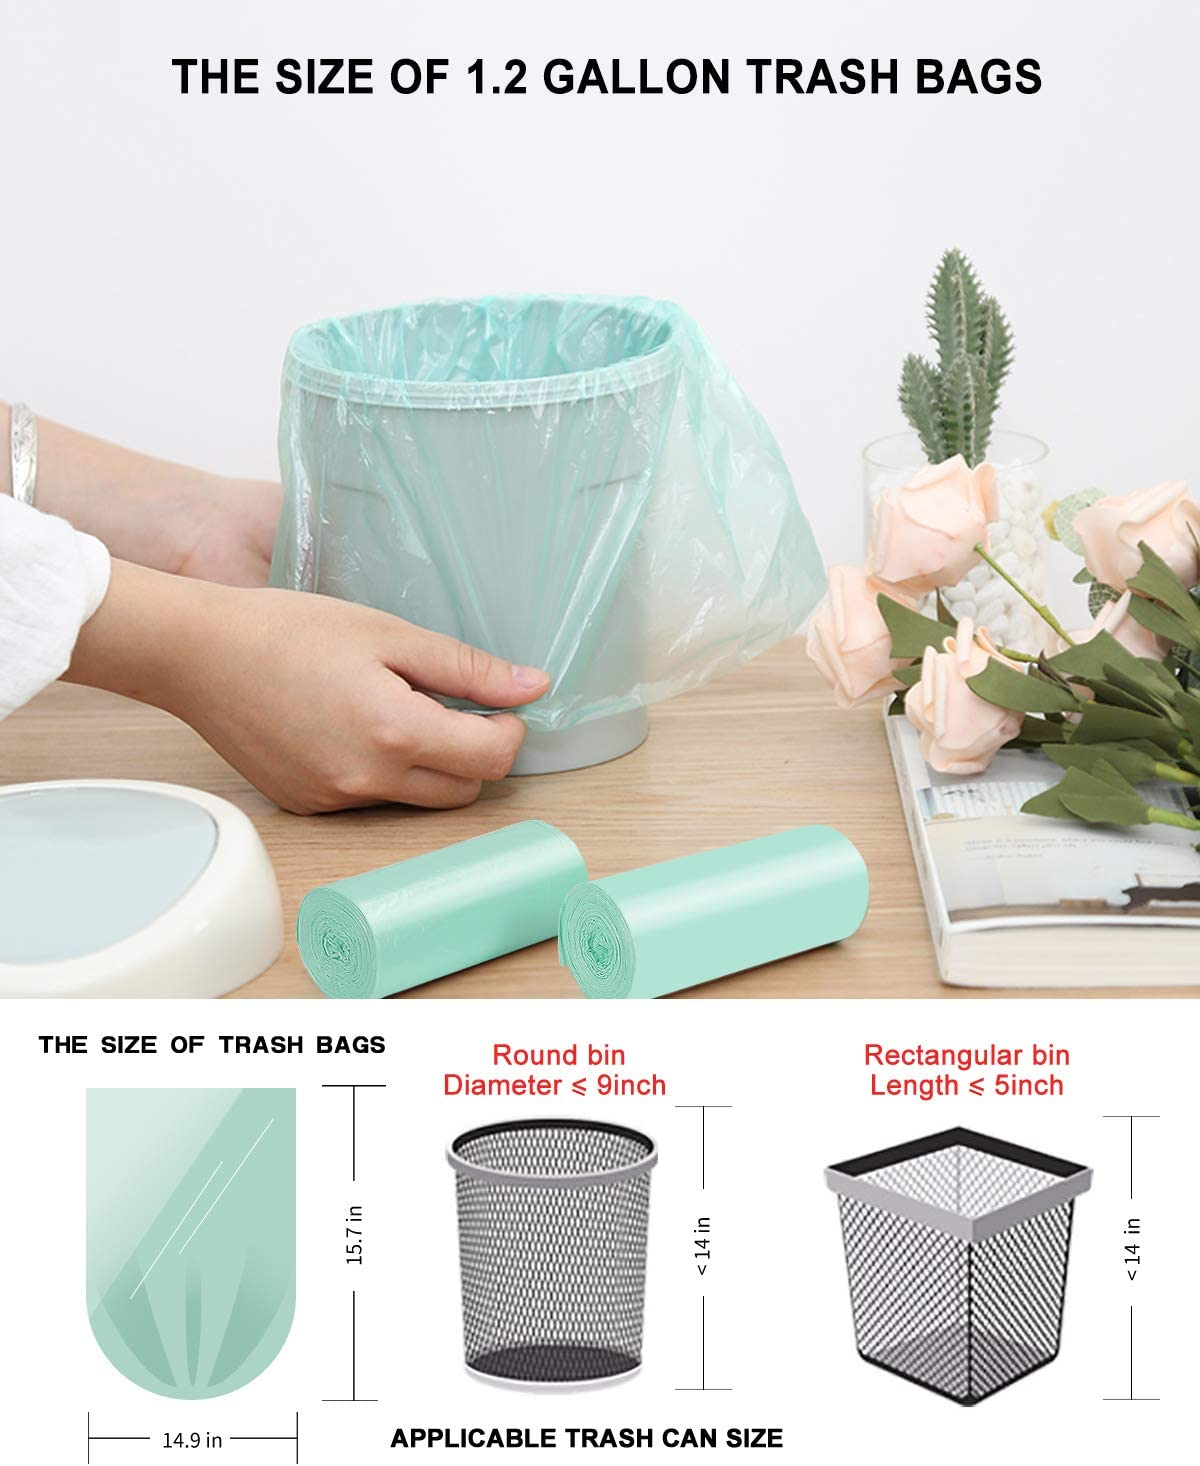 Lawn,Bathroom Fit 5 Liter 5L,1 Gal,120 Count,Clear 1.2Gallon Small Bathroom Trash Can Bin Liners Bags Biodegradable Trash Bags for Home Office